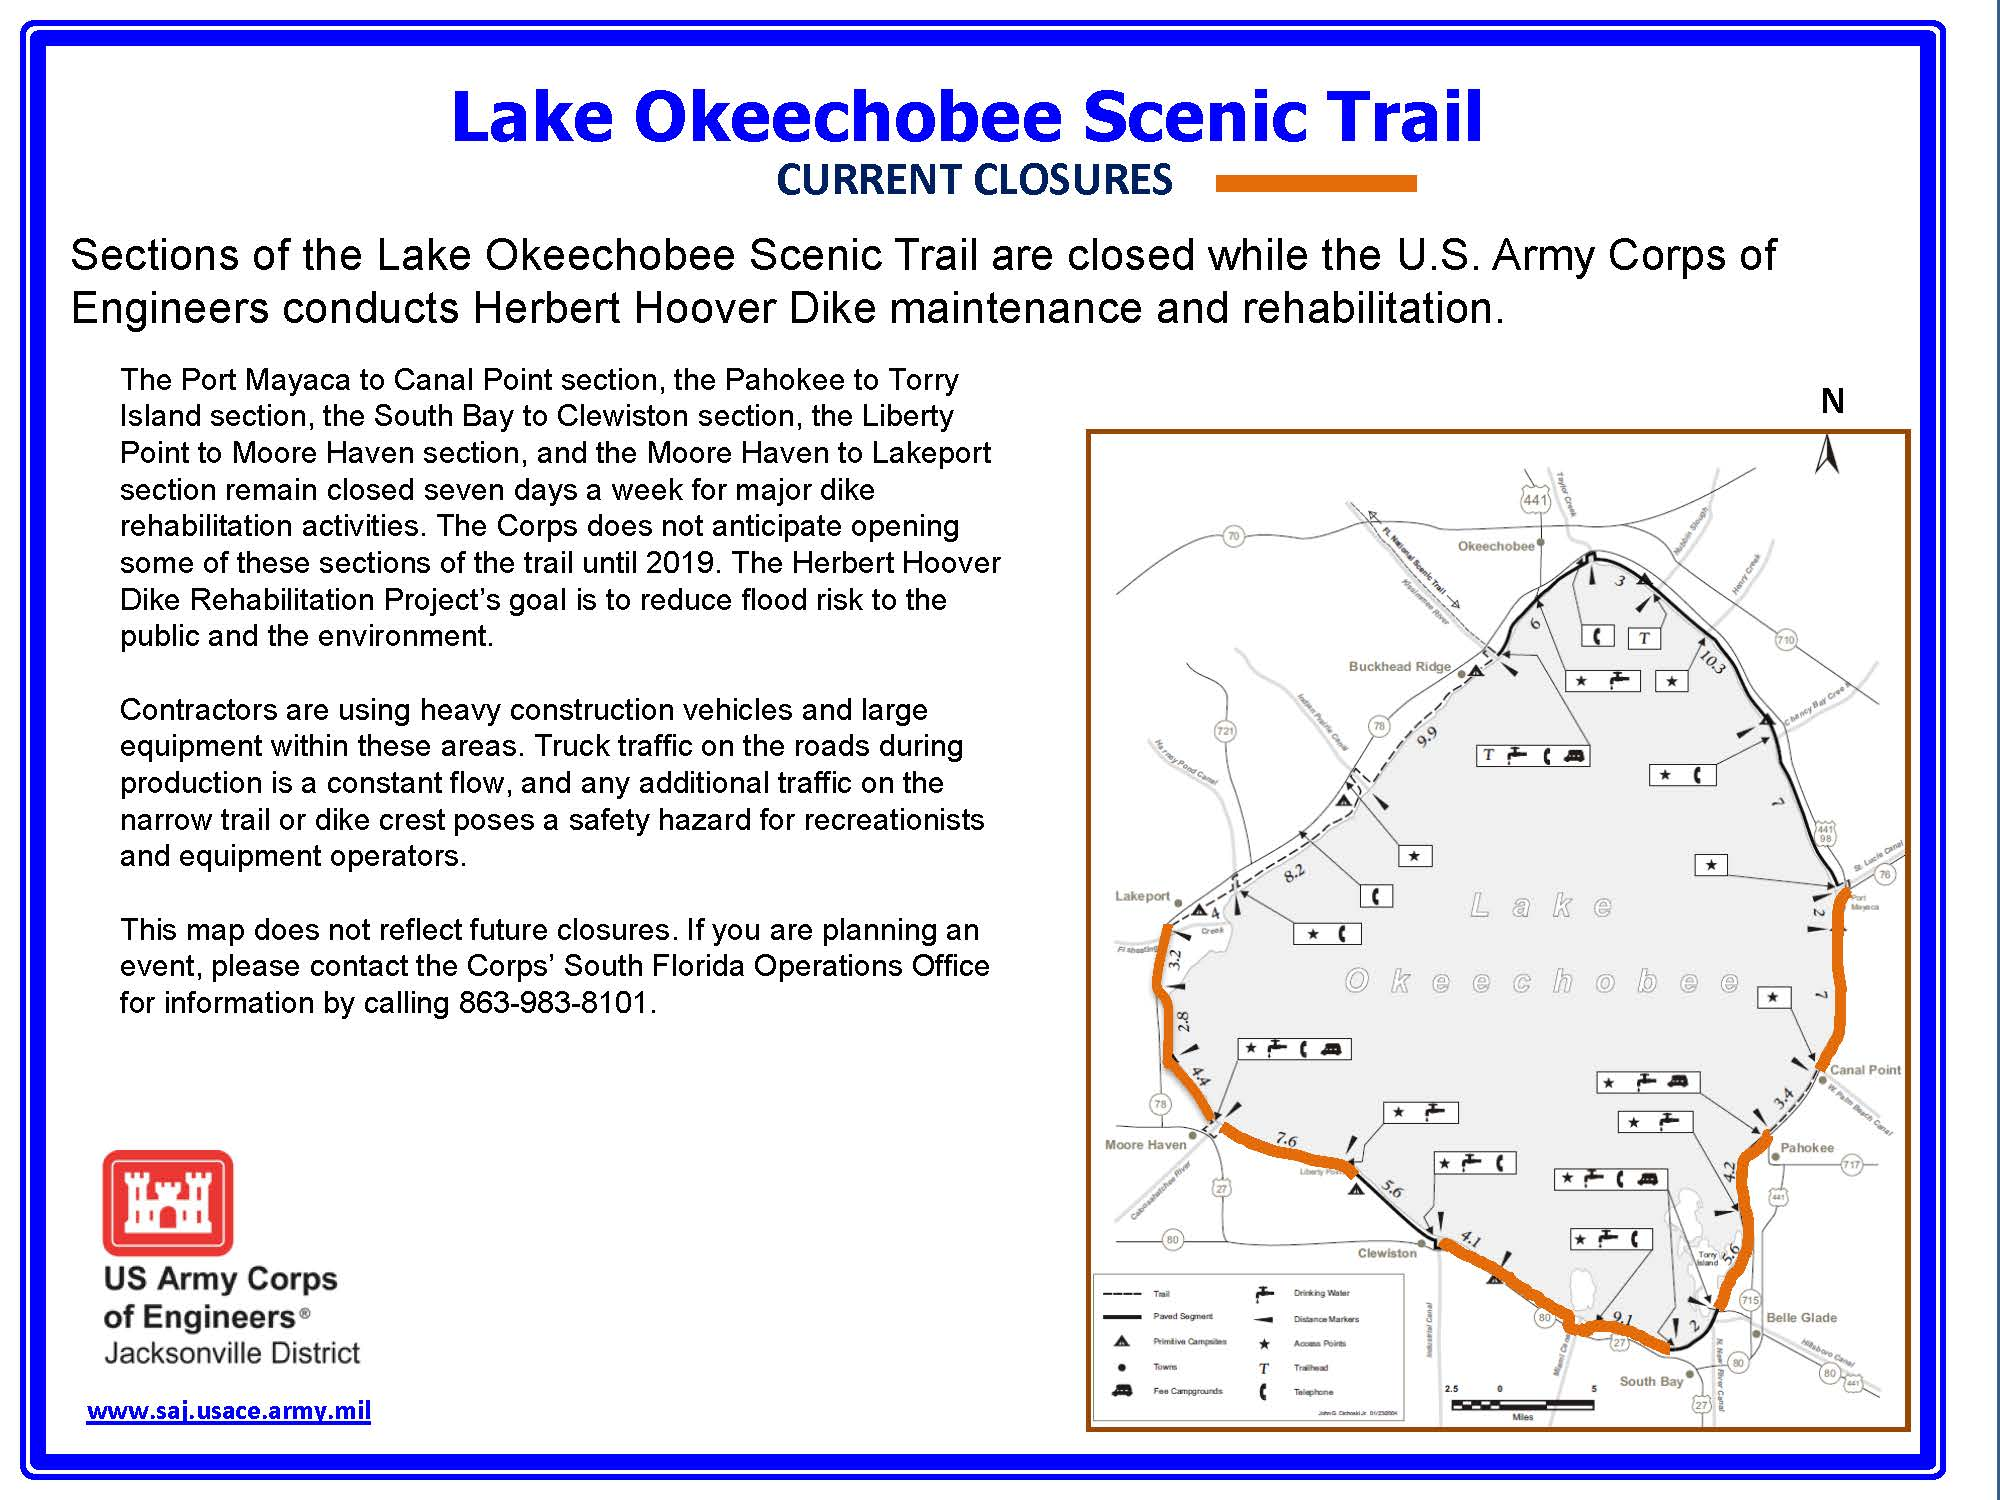 Corps reopens a section of Lake Okeechobee Scenic Trail